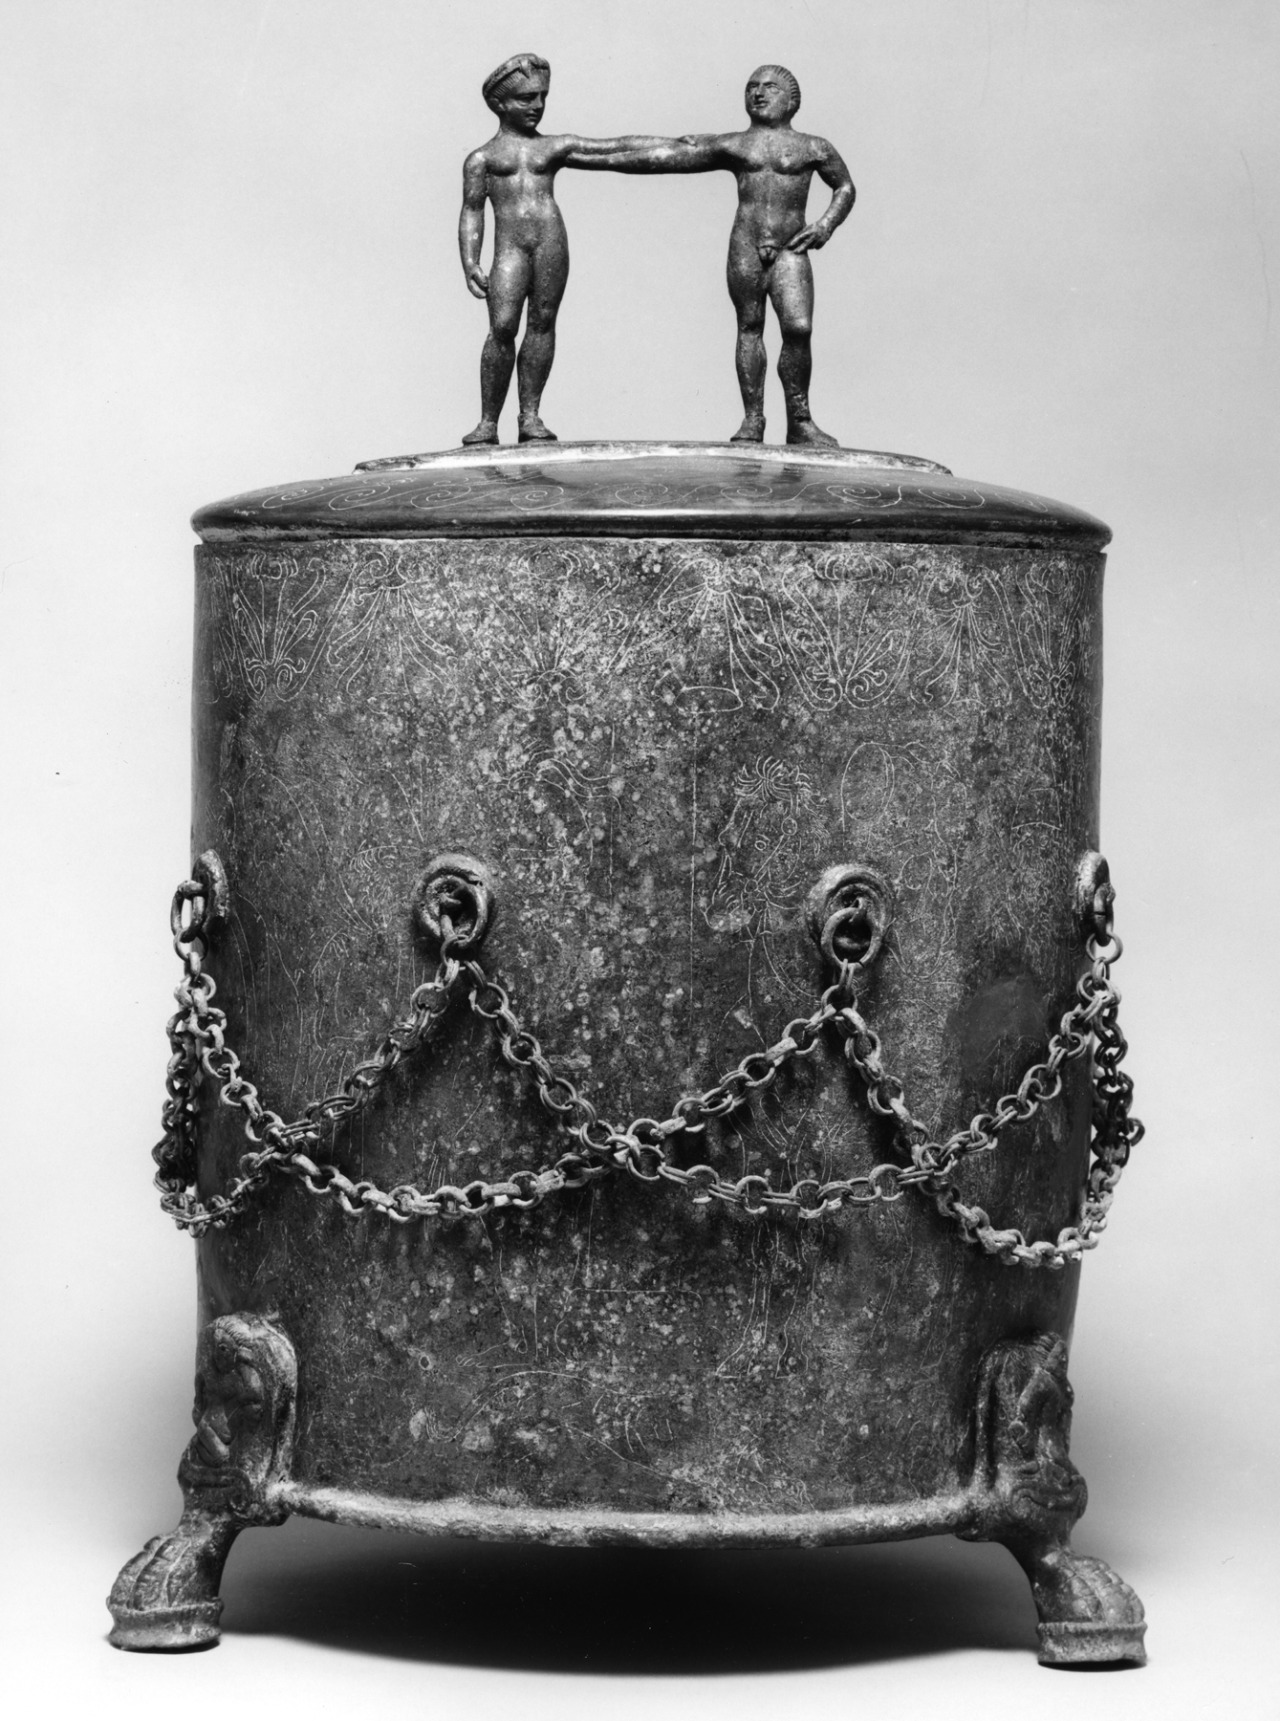 Etruscan Cista Depicting an Assembly of Warriors, 4th century BC, made of bronze. Artifact statement from the Walters Art Museum:  Cistae were containers used to safeguard precious objects, including mirrors, perfume flasks, and cosmetics. A particular type of cista was made during the 4th and 3rd centuries BC in Praeneste, a site in Latium (the region around Rome) that was heavily influenced by Etruscan culture. The elaborately engraved scenes are thought to imitate famous, but now lost, Greek wall-paintings. The ancient metalworker often pressed a white substance into the engraved lines in order to accentuate the decoration. The handles commonly take the form of human figures. Many artists in other early Italian cultures similarly incorporated figures of humans in functional objects. A scene of warriors assembled within a large palace or hall is a common decoration on cistae. On the front, at left are two running figures carrying shields; an eagle flies over the left figure. Three helmeted warriors appear to the right. On the back is a seated young man, his armor gathered around him and a horse at ready nearby. A satyr and a maenad with their arms intertwined form the lid's handle. The vessel's feet have the four toes of a lion but are shaped like a bird's claws; each is topped by winged youth.  Courtesy & currently located at the Walters Art Museum, USA